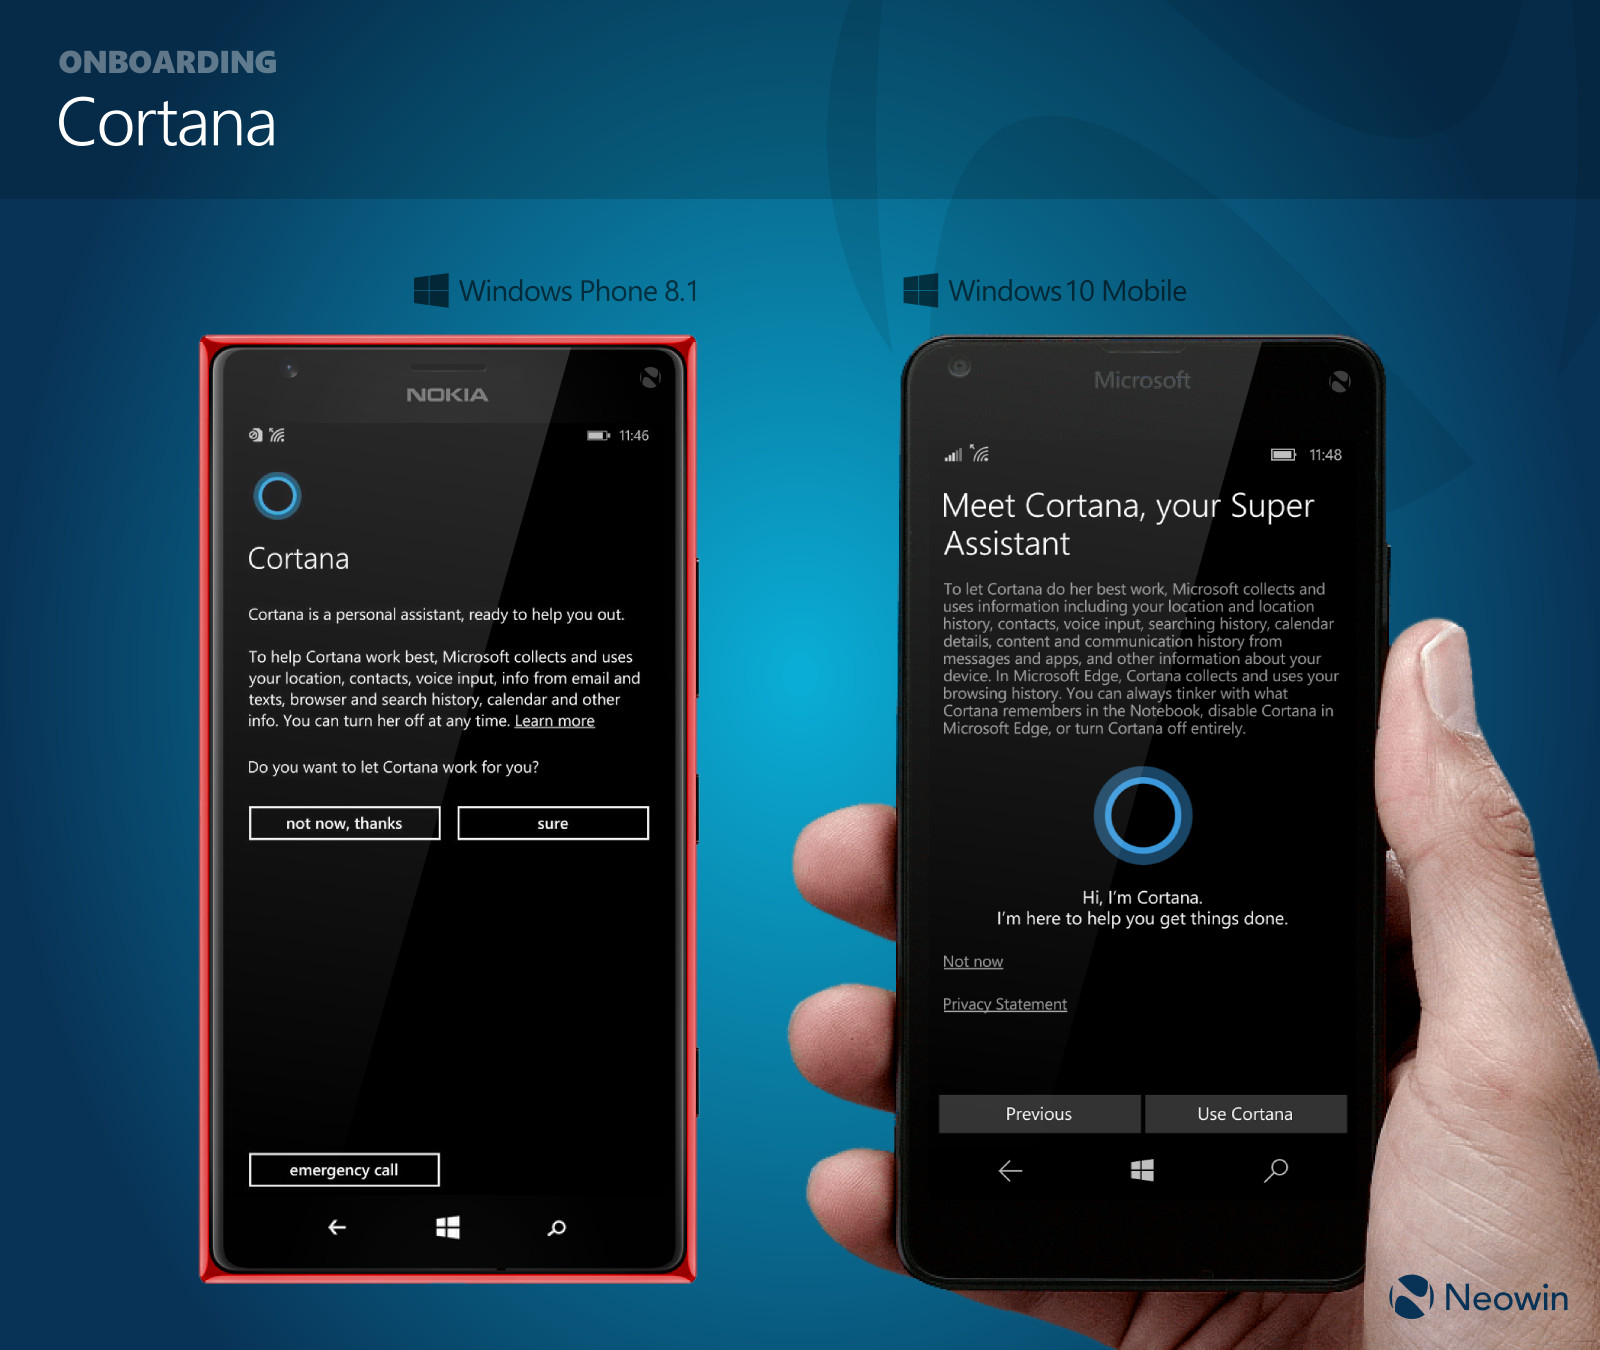 In pictures: Comparing Windows Phone 8.1 and Windows 10 Mobile, side by  side - Neowin